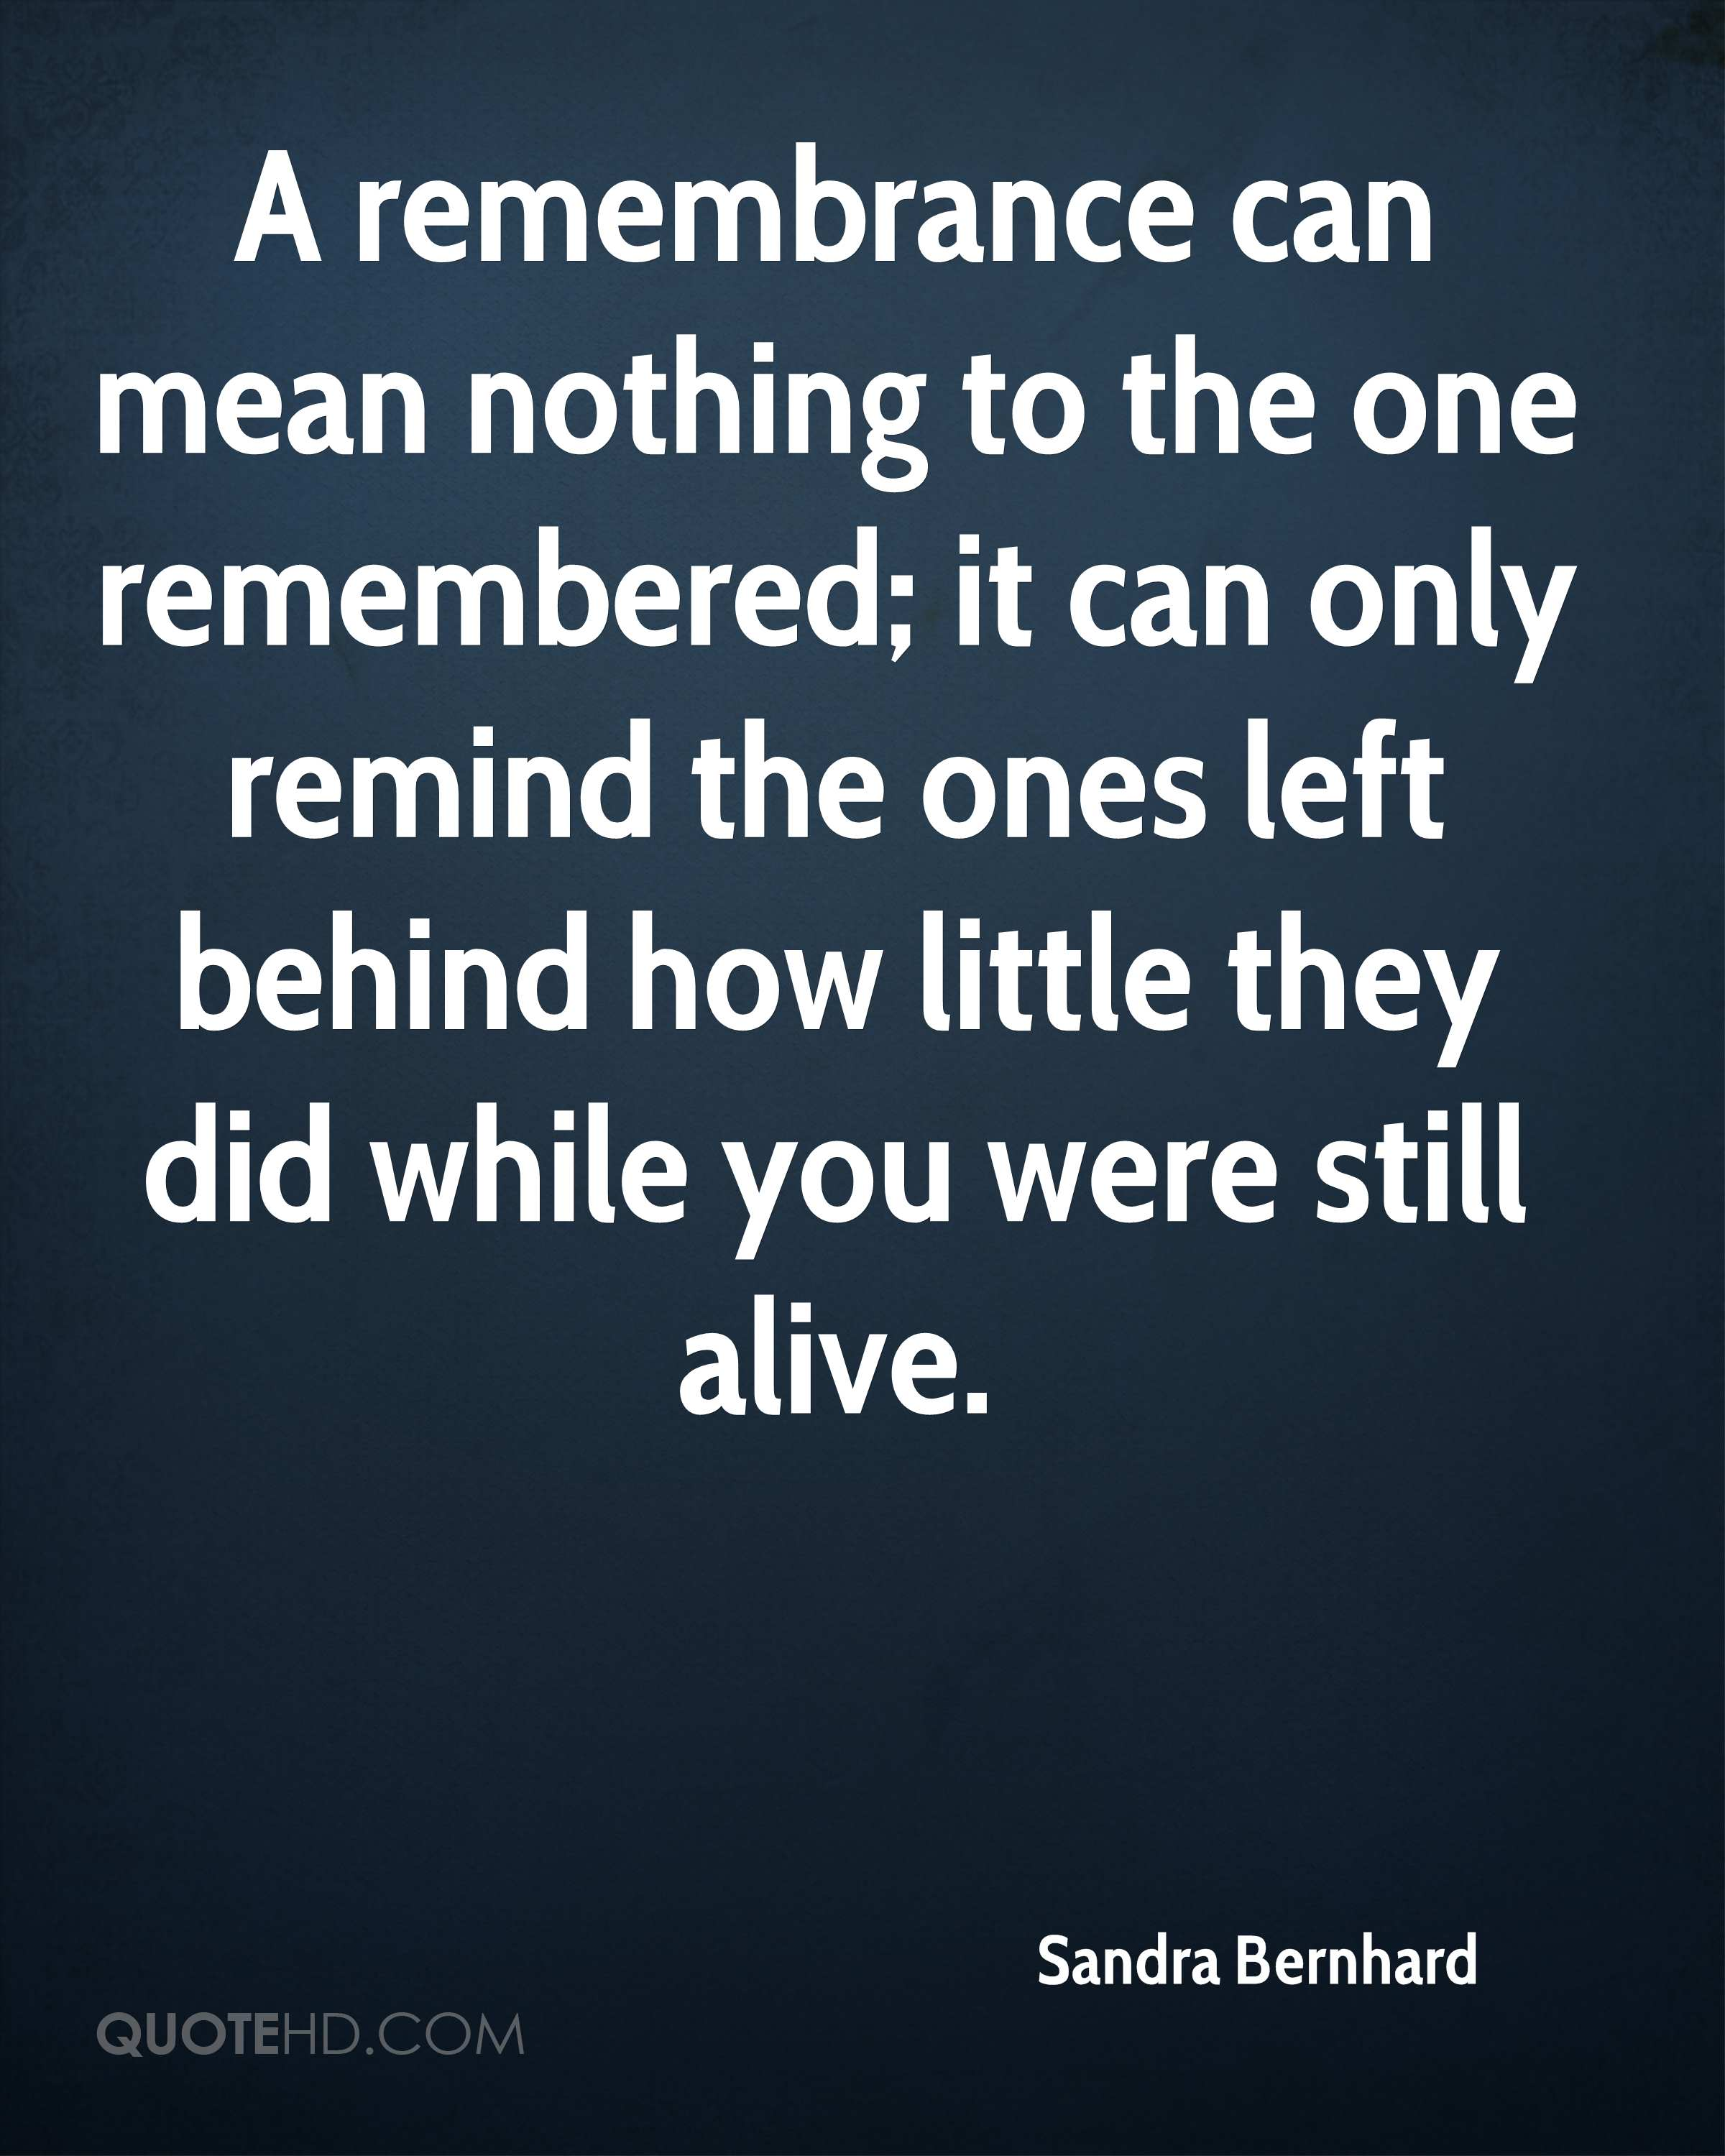 A remembrance can mean nothing to the one remembered; it can only remind the ones left behind how little they did while you were still alive.